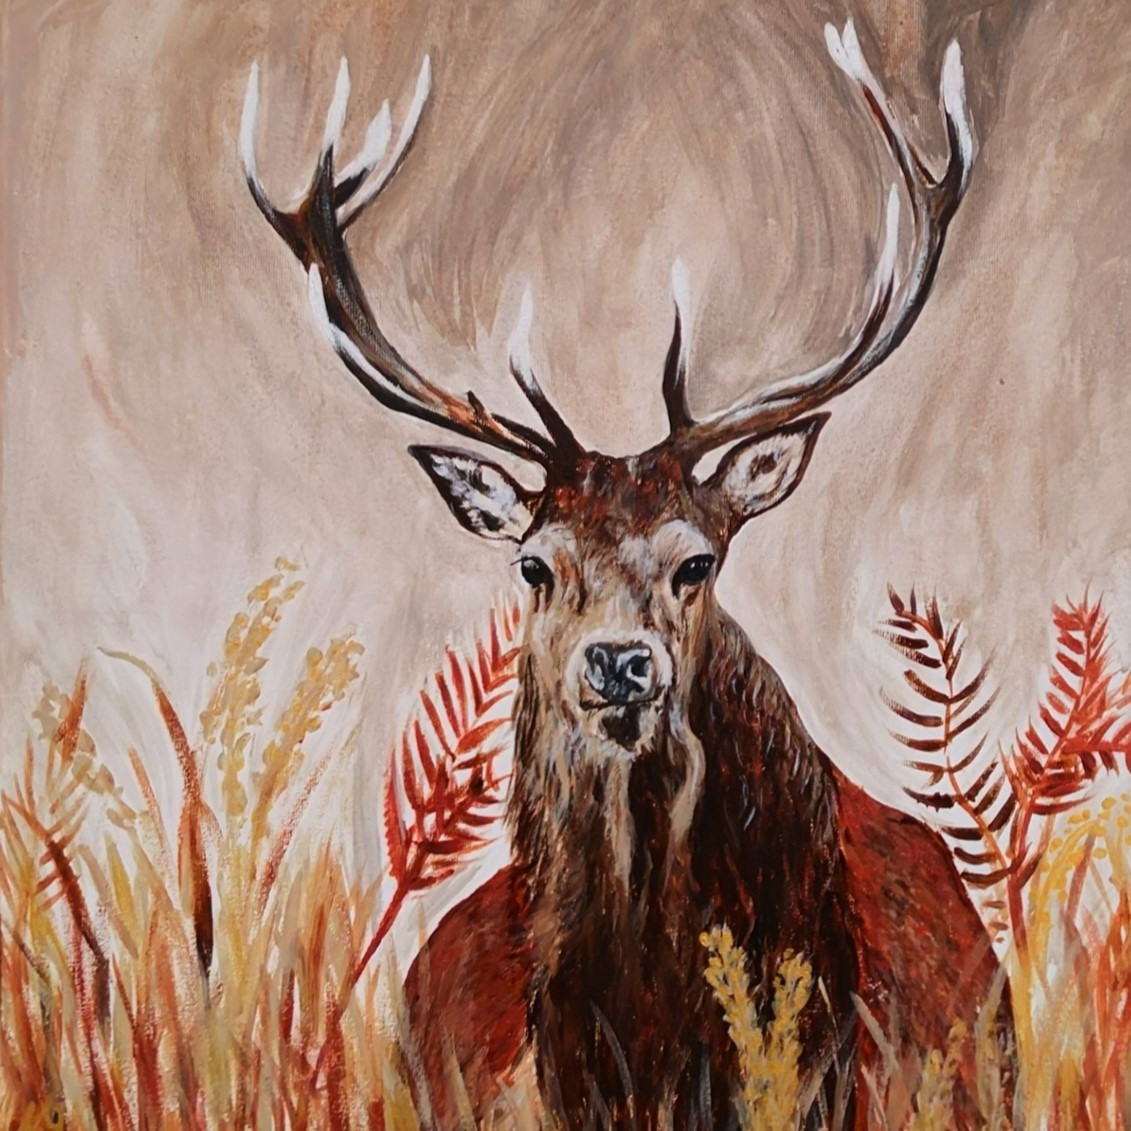 Stag in Autumn Ferns, Acrylic on canvas